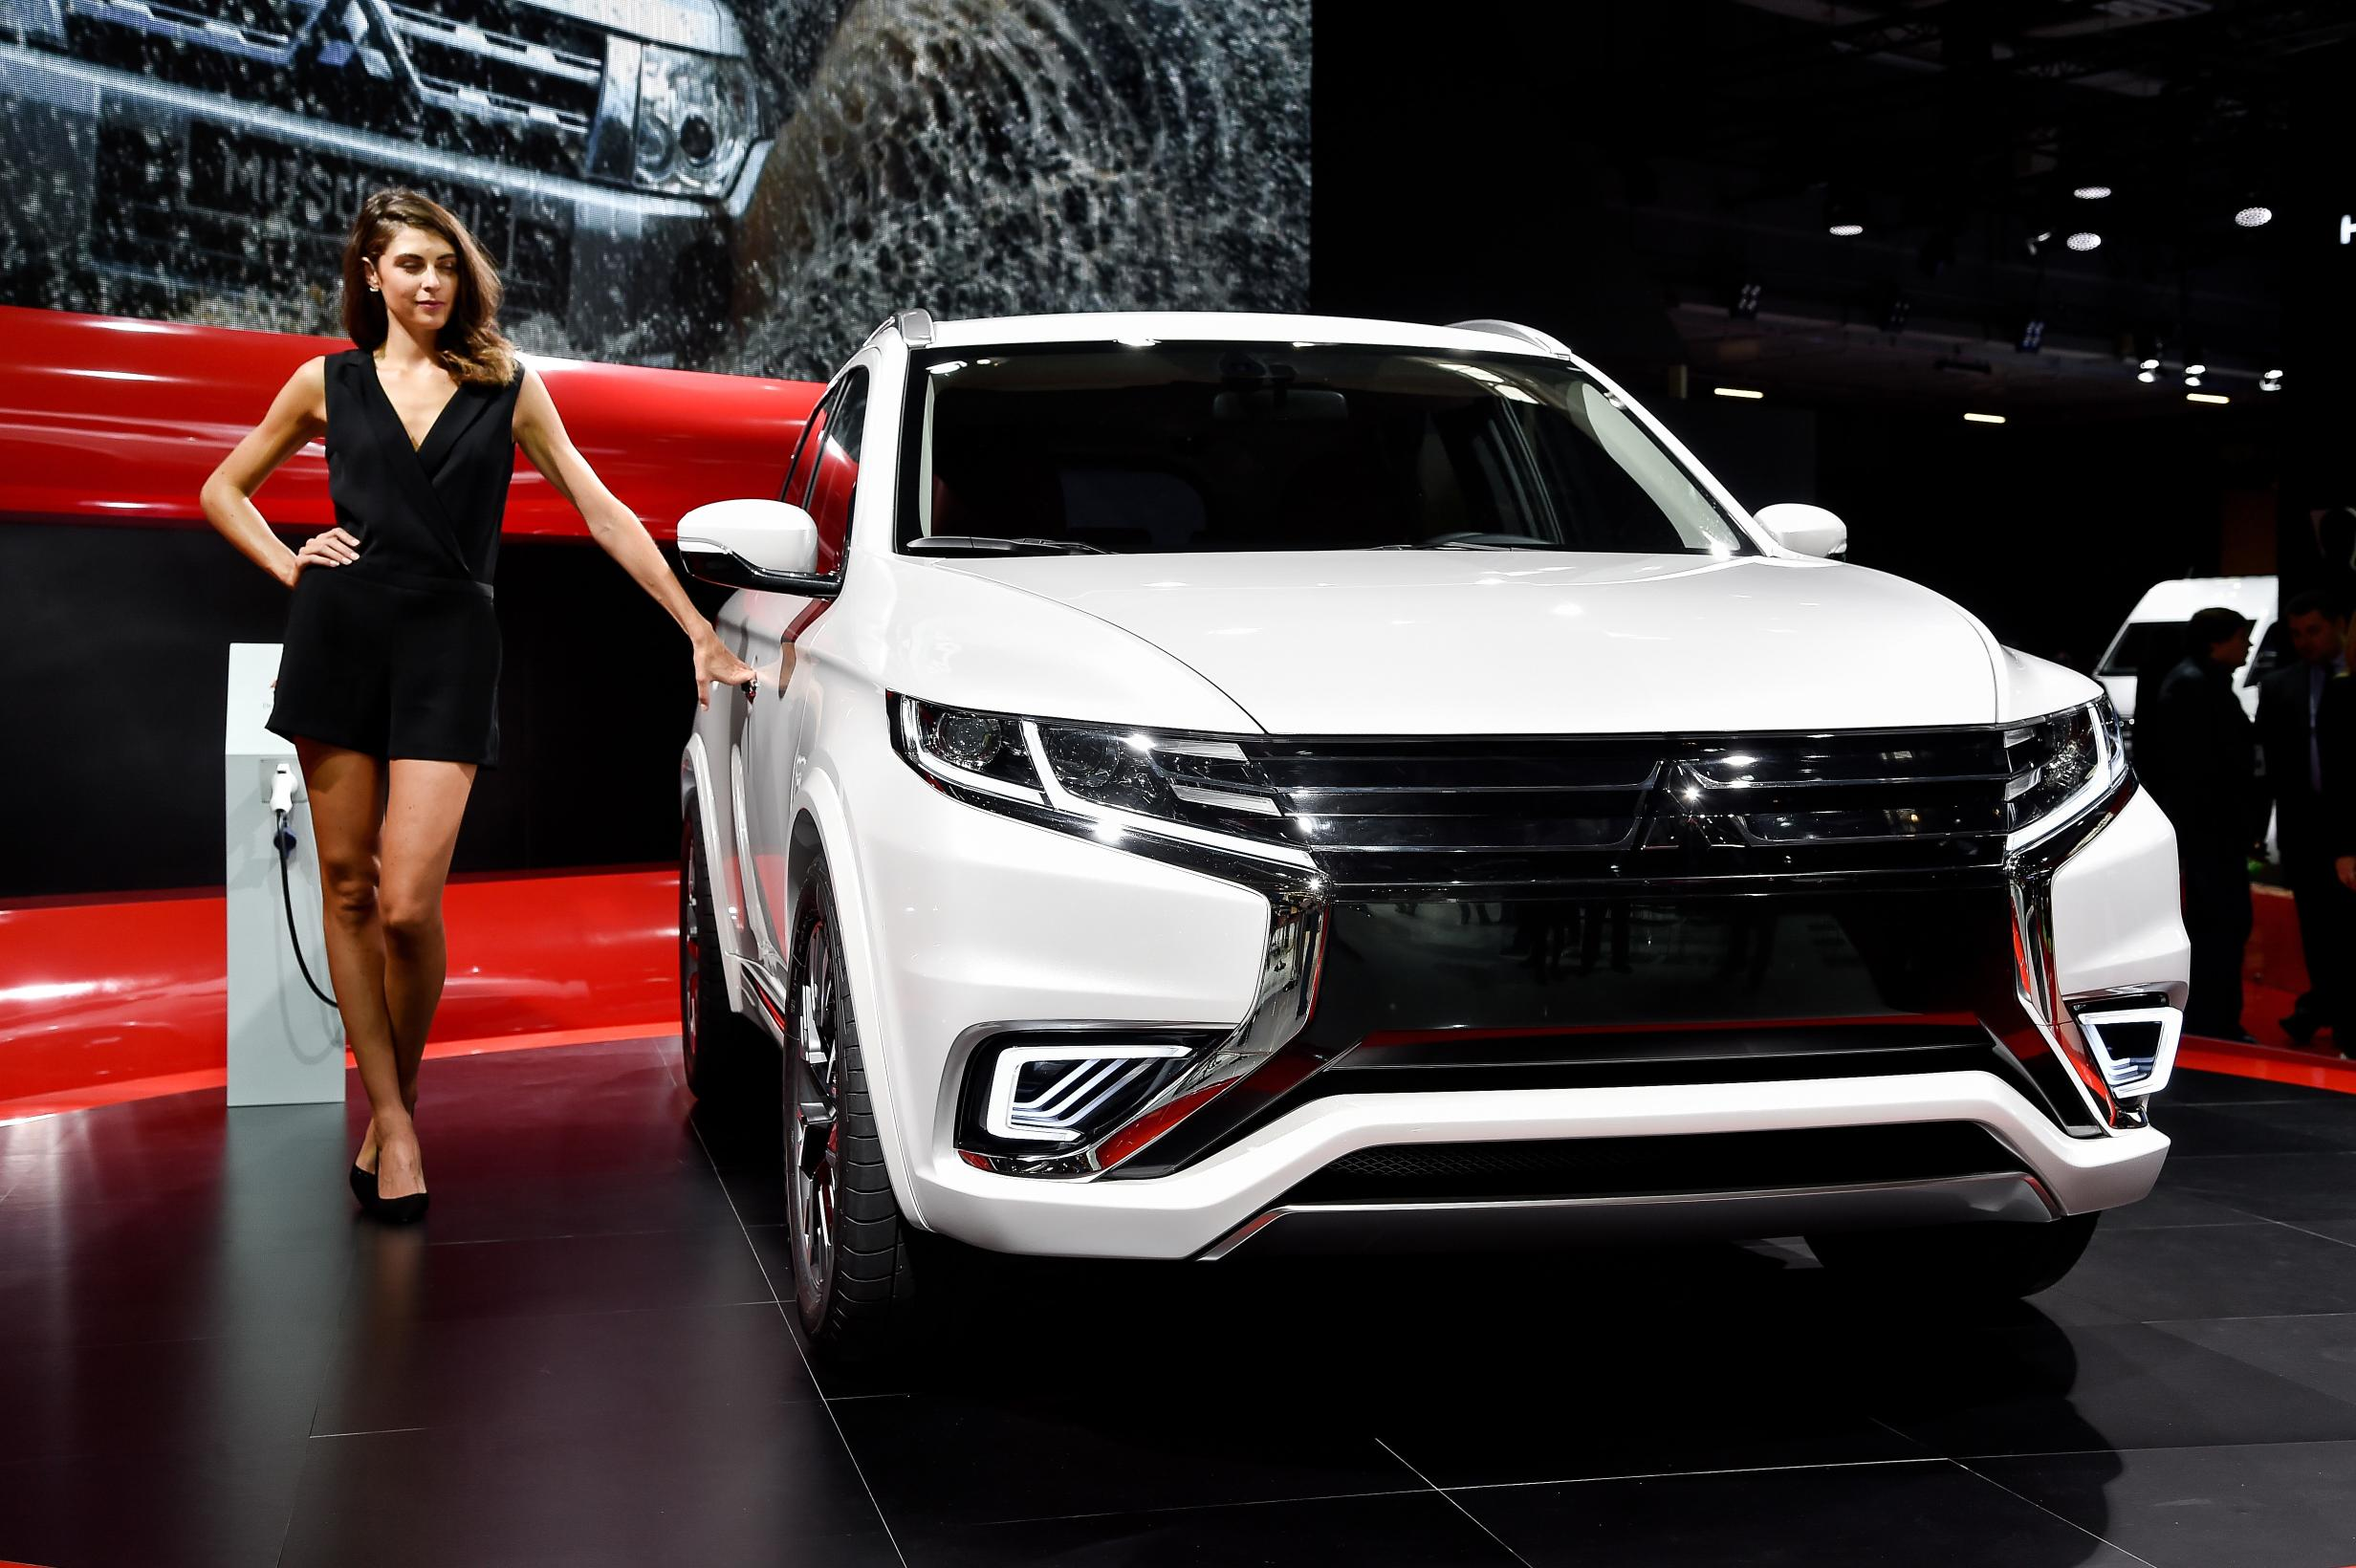 2019 Mitsubishi Outlander Release Date and Price - New SUV ...